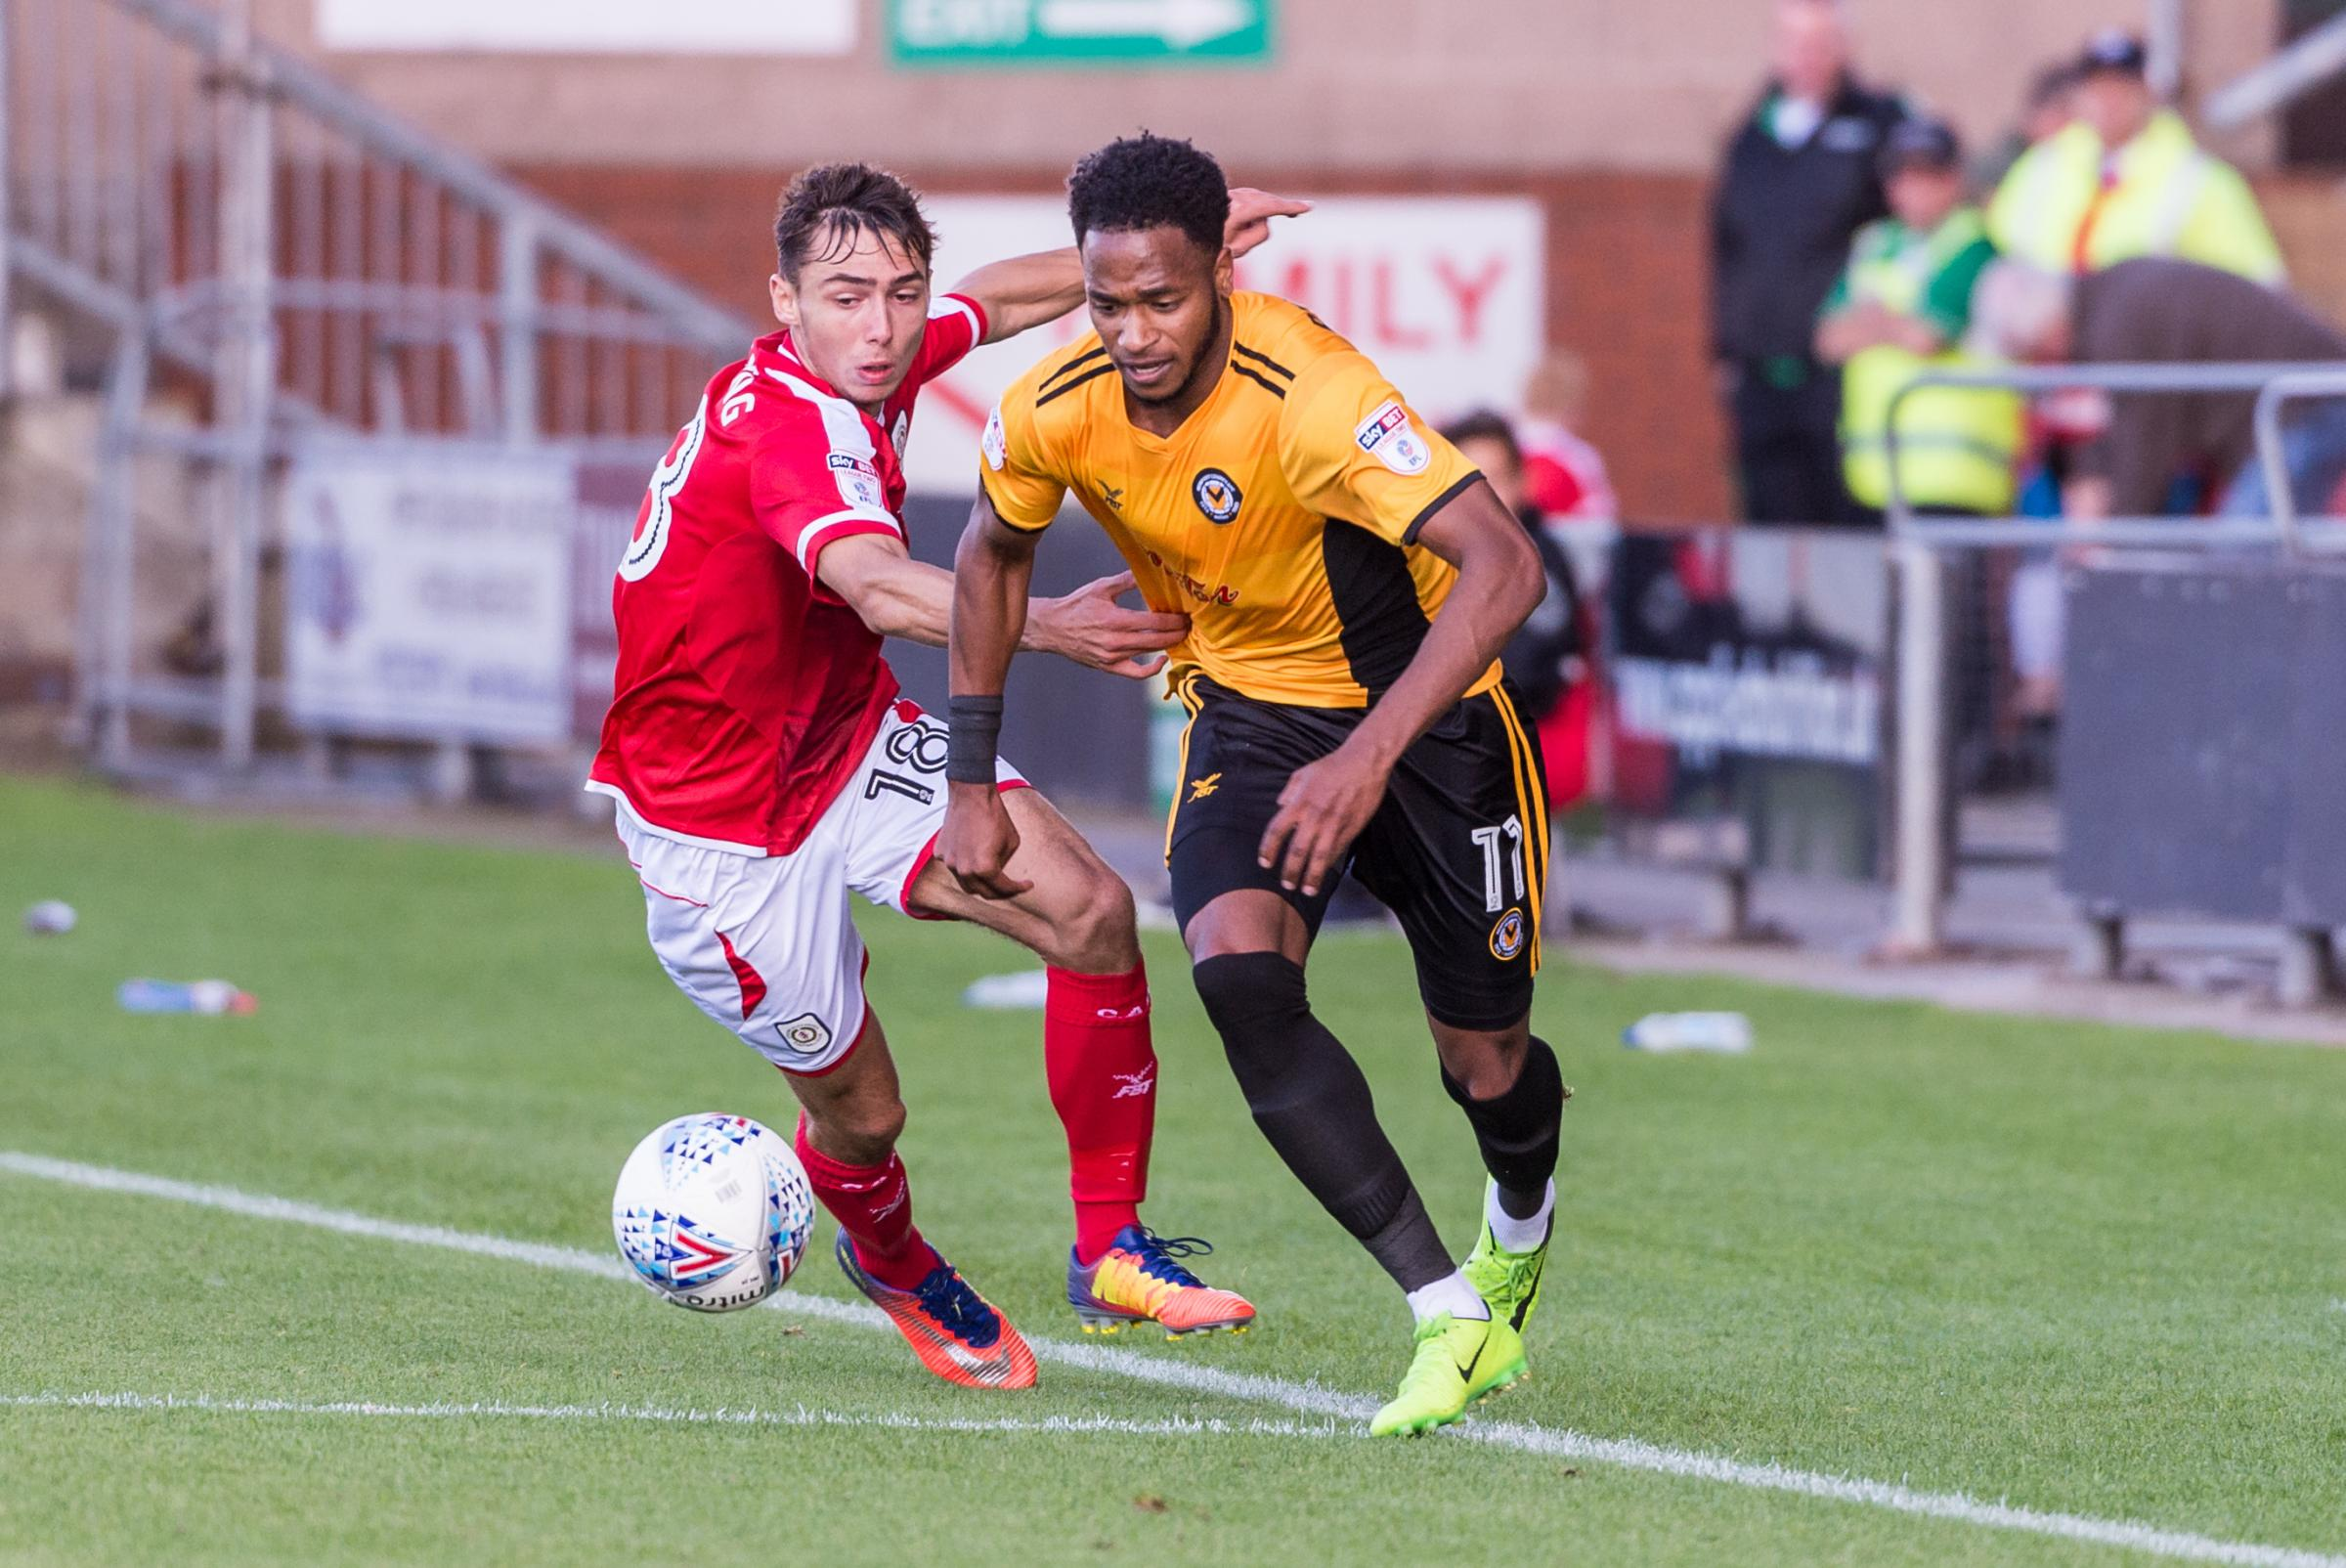 TALENT: Newport County winger Lamar Reynolds in action at Crewe Alexandra earlier this season. Picture: Huw Evans Agency